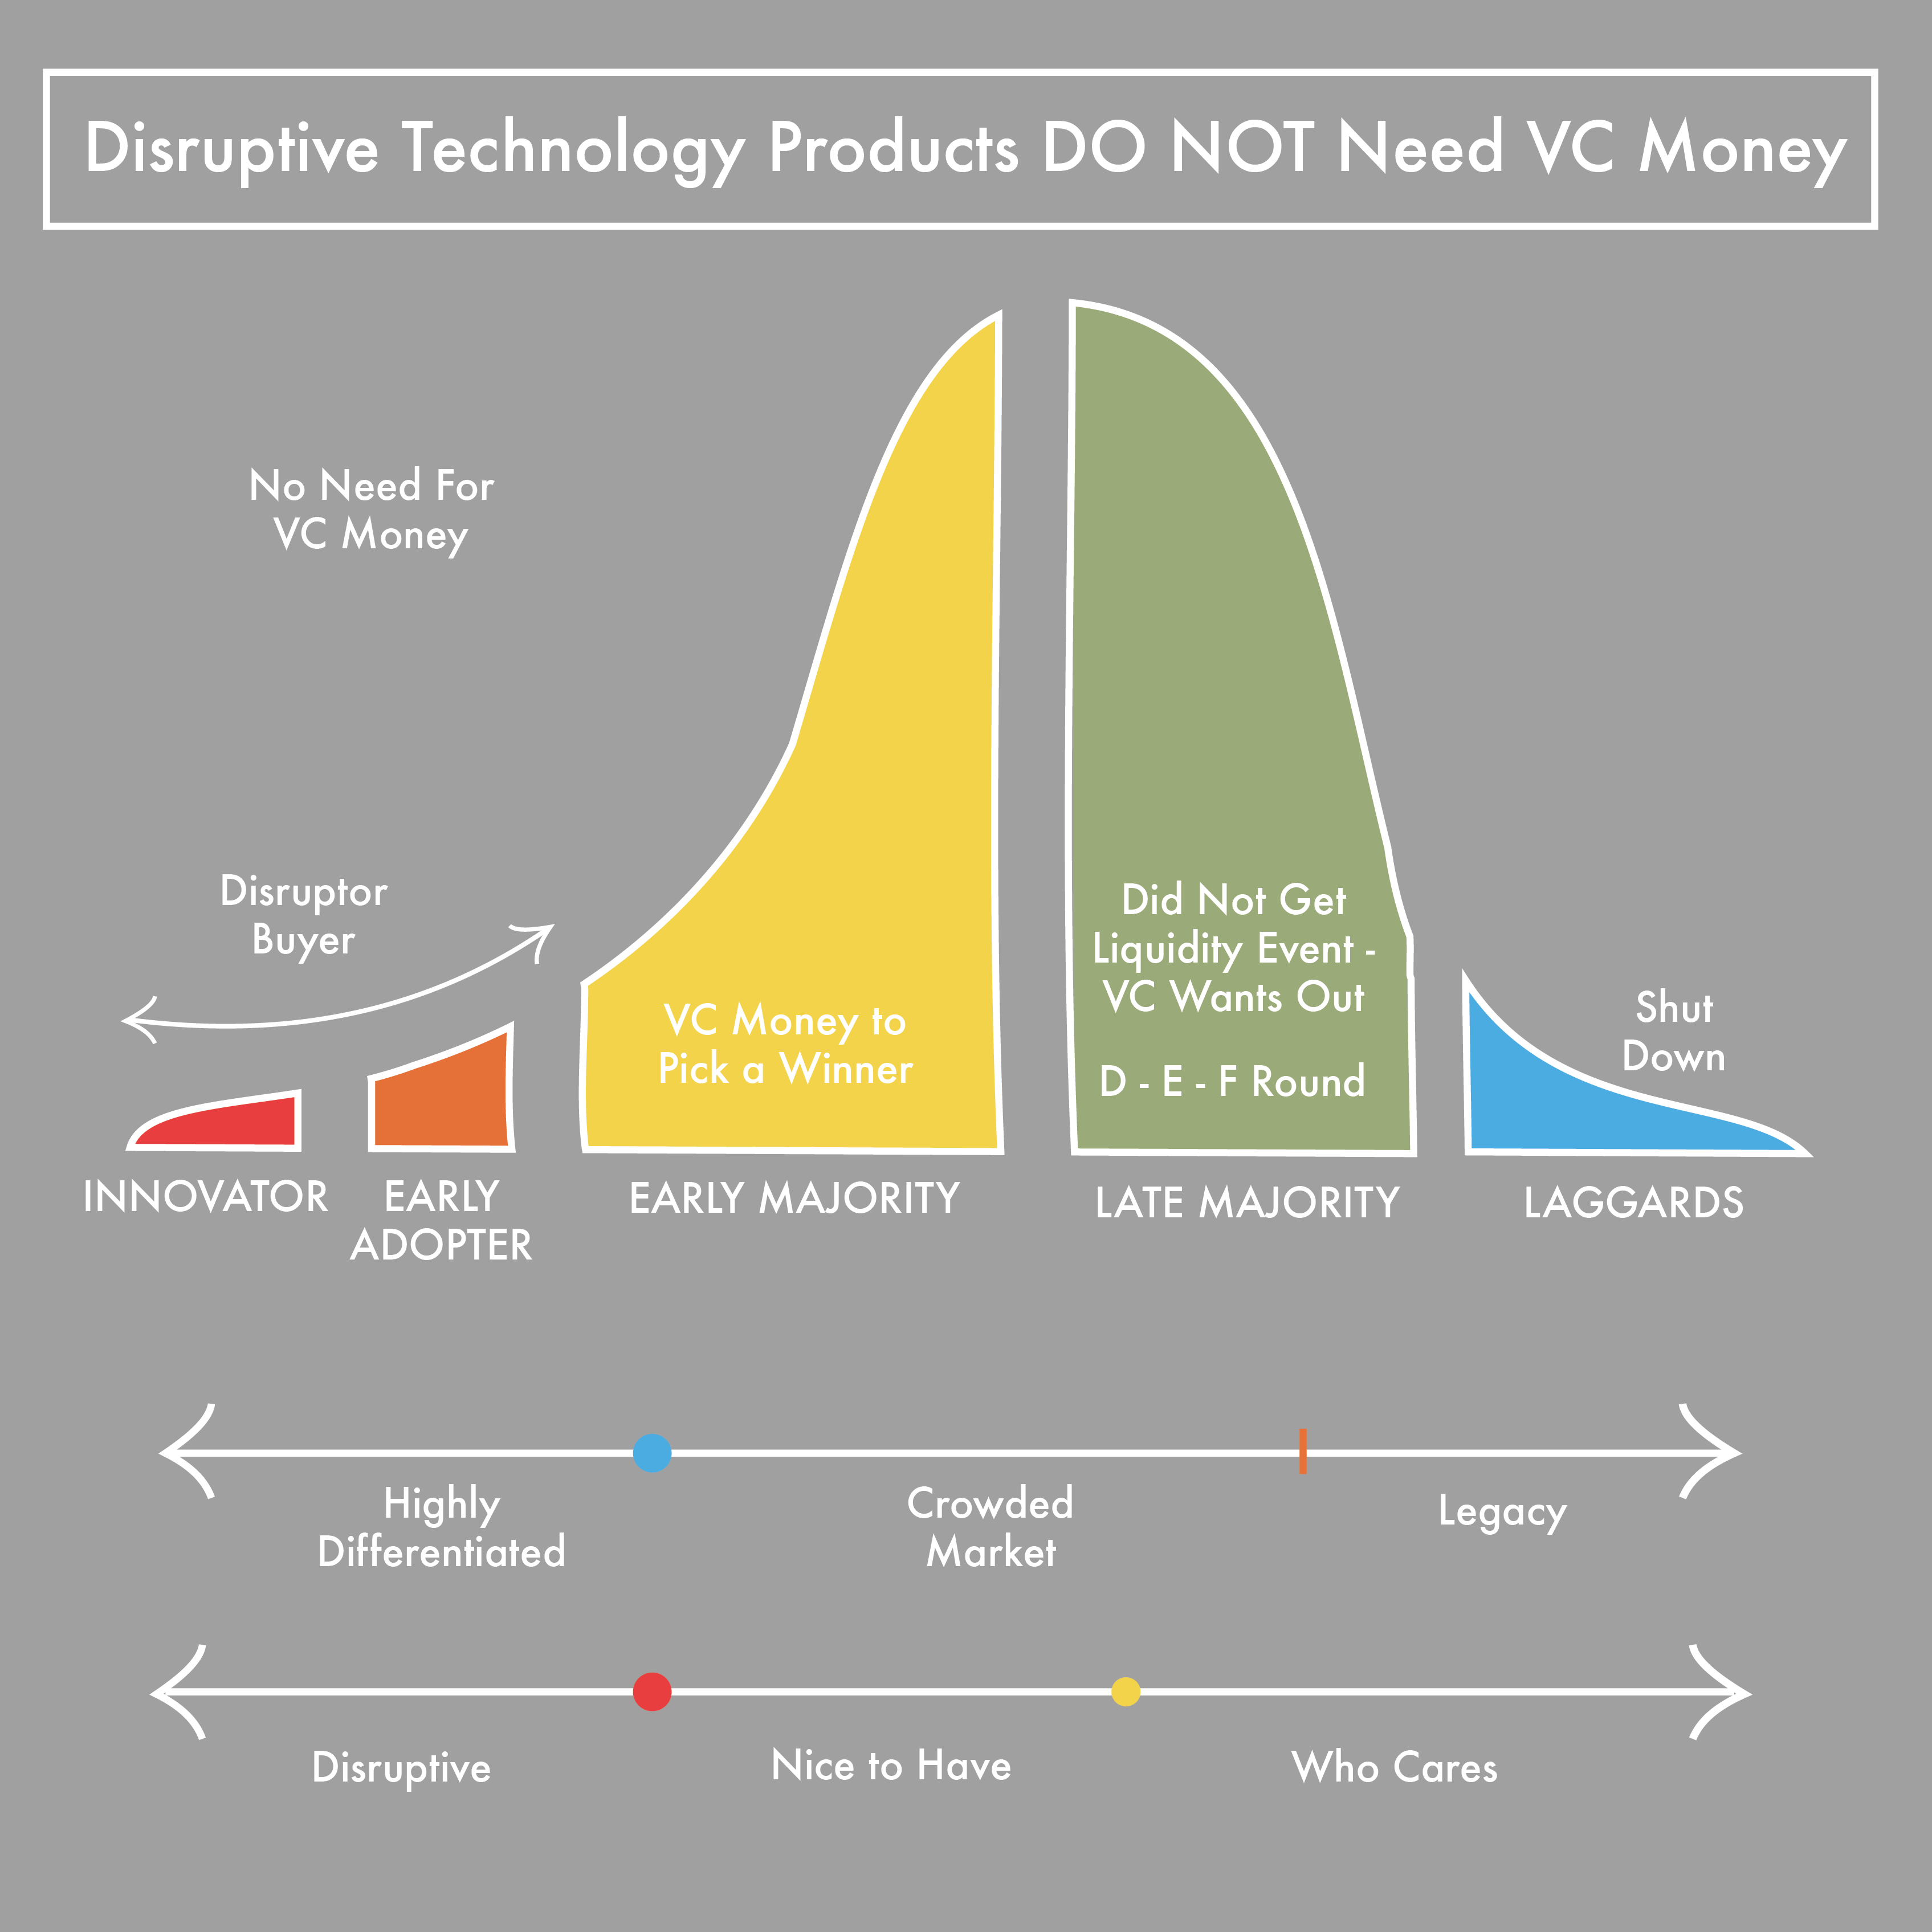 Disruptive Technology Products Do Not Need VC Money